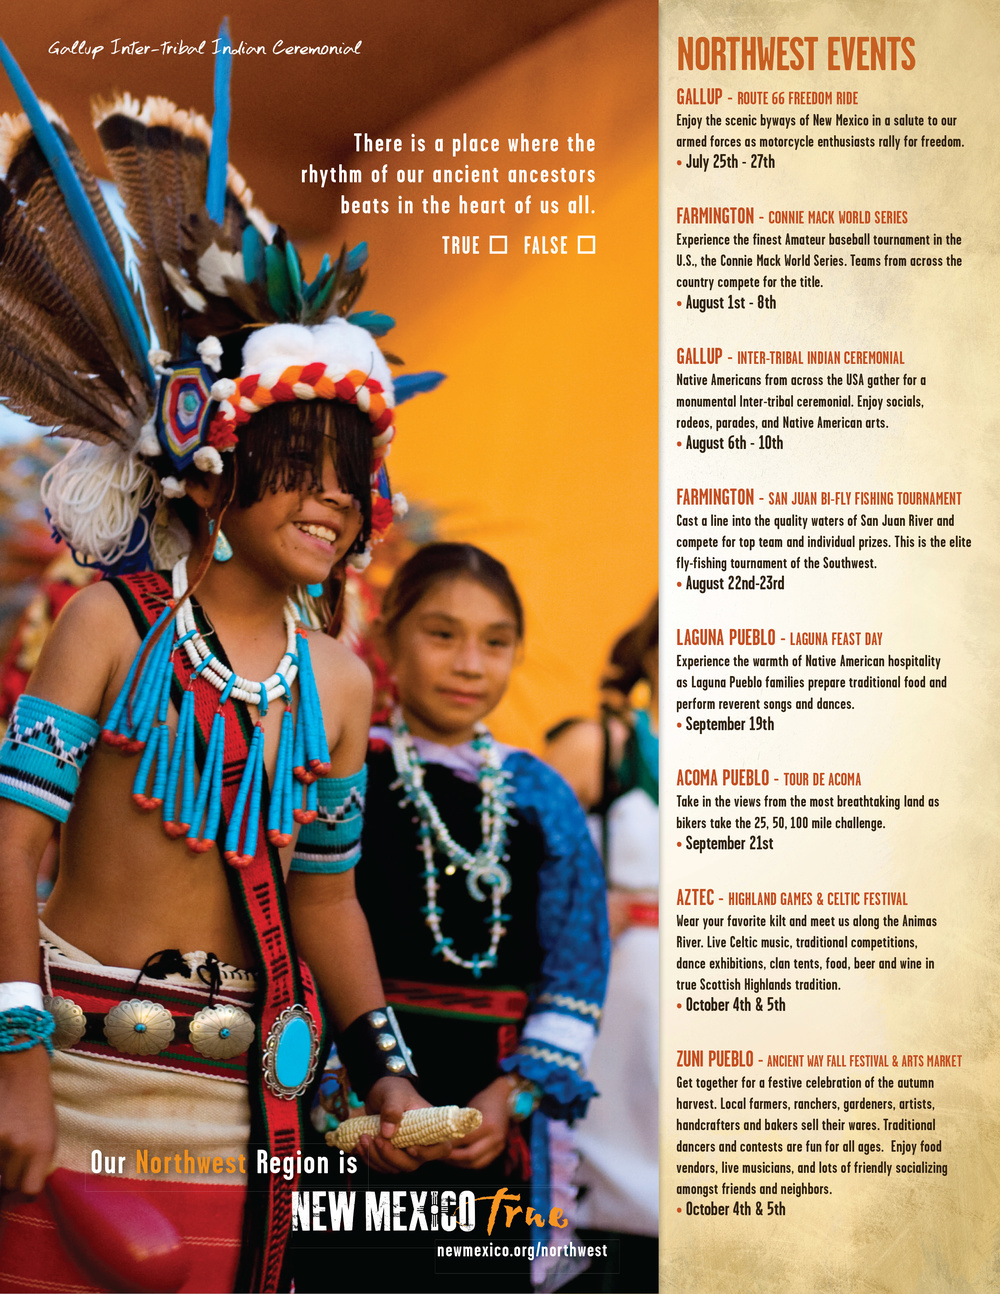 Regional event Ad for Northwestern New Mexico